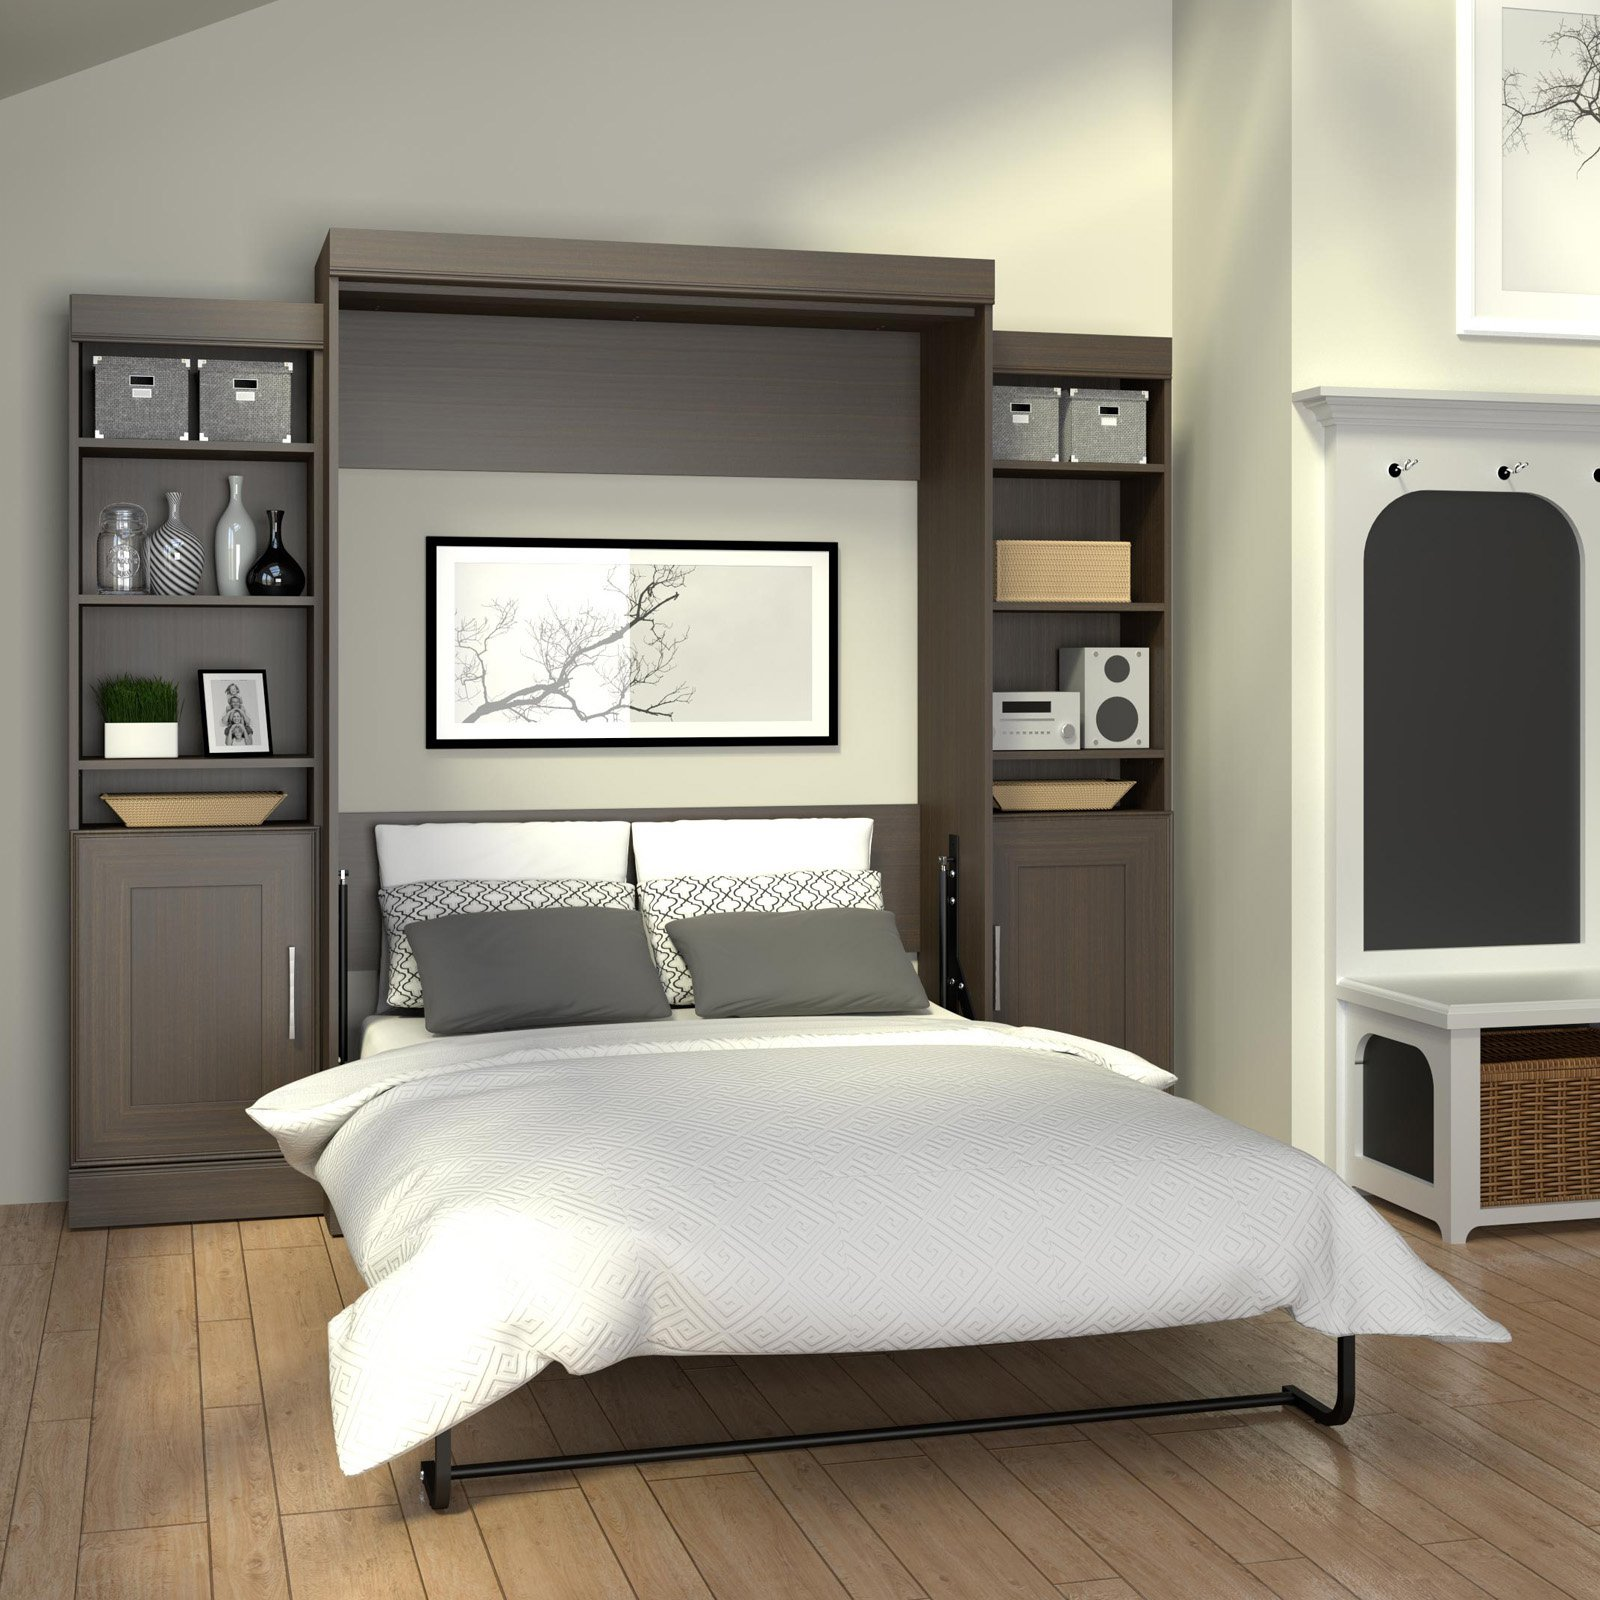 Attractive Bestar Wall Bed for Modern Bedroom Furniture Idea: Install Murphy Bed | Wall Mounted Headboards For King Size Beds | Bestar Wall Bed